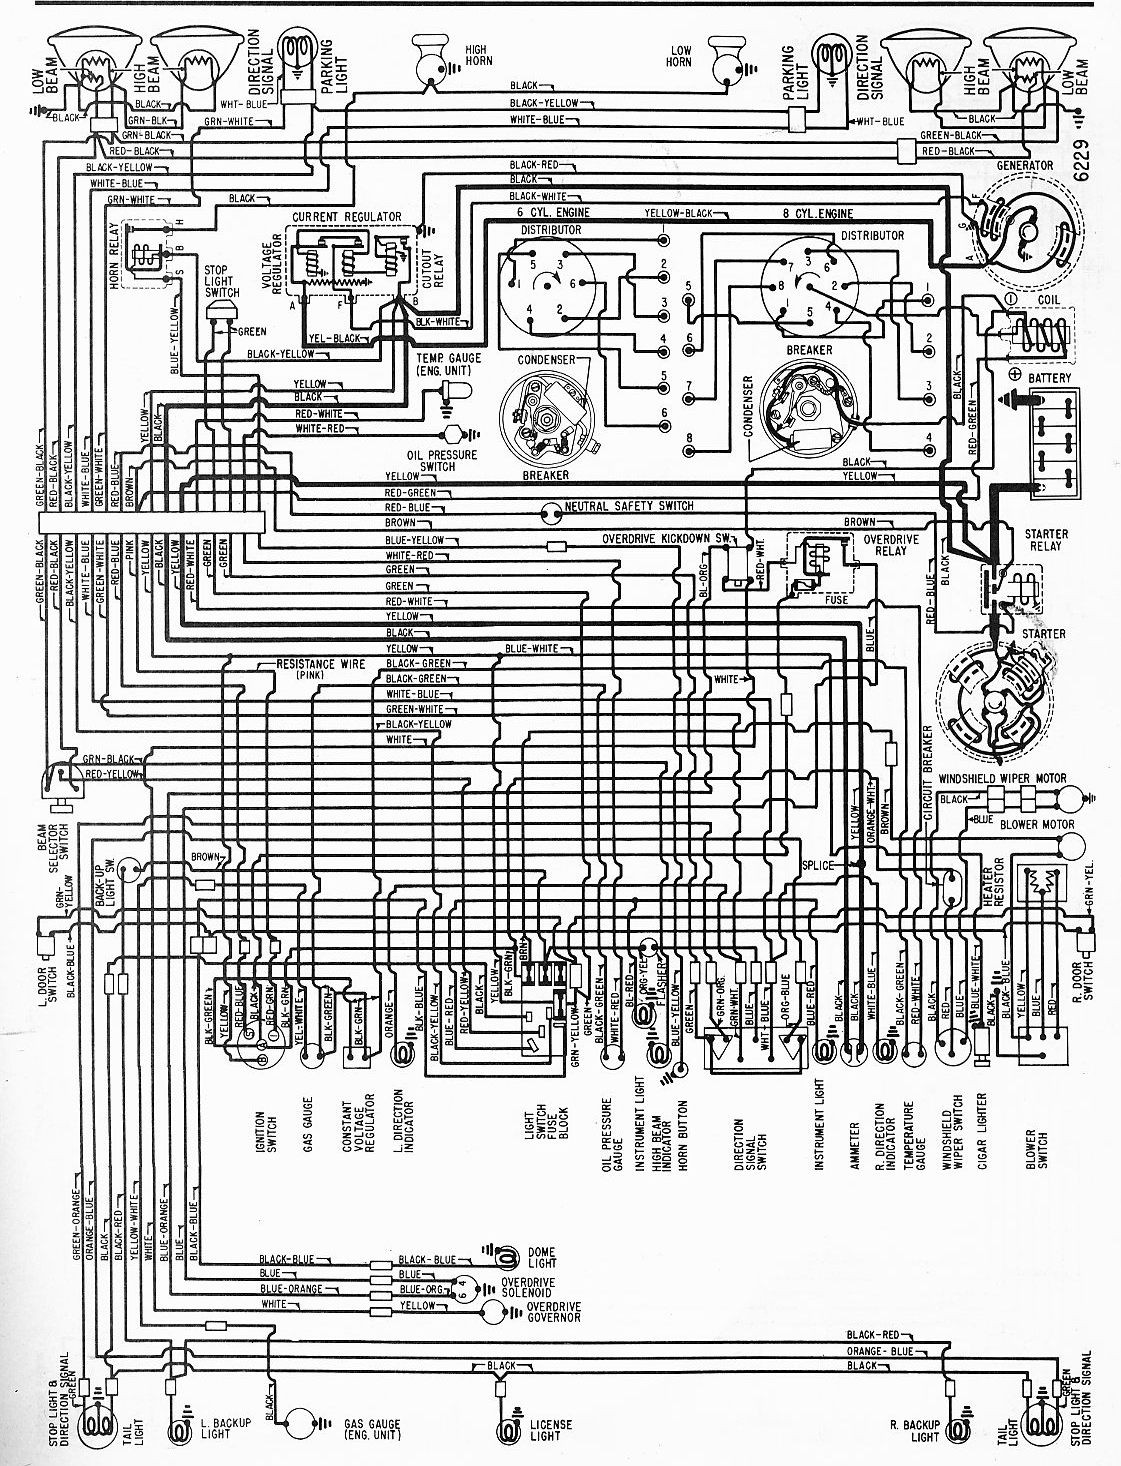 Club Car Schematic Diagram Wiring Image Xrt 1550 I Have A 1962 Ford F100 With 3 Speed W Od Trans Need To Solenoid Library From